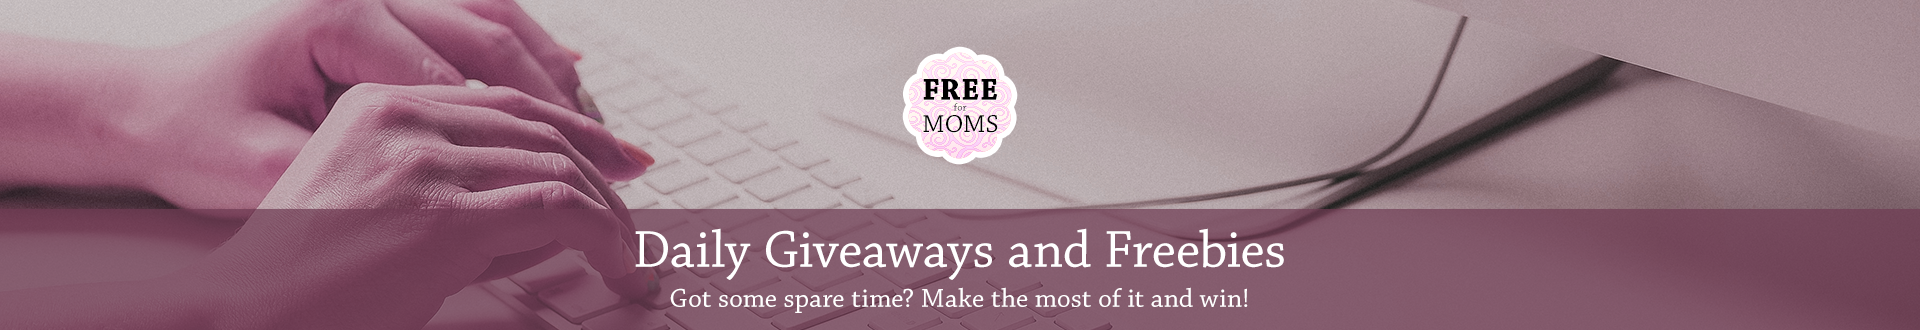 Free for moms